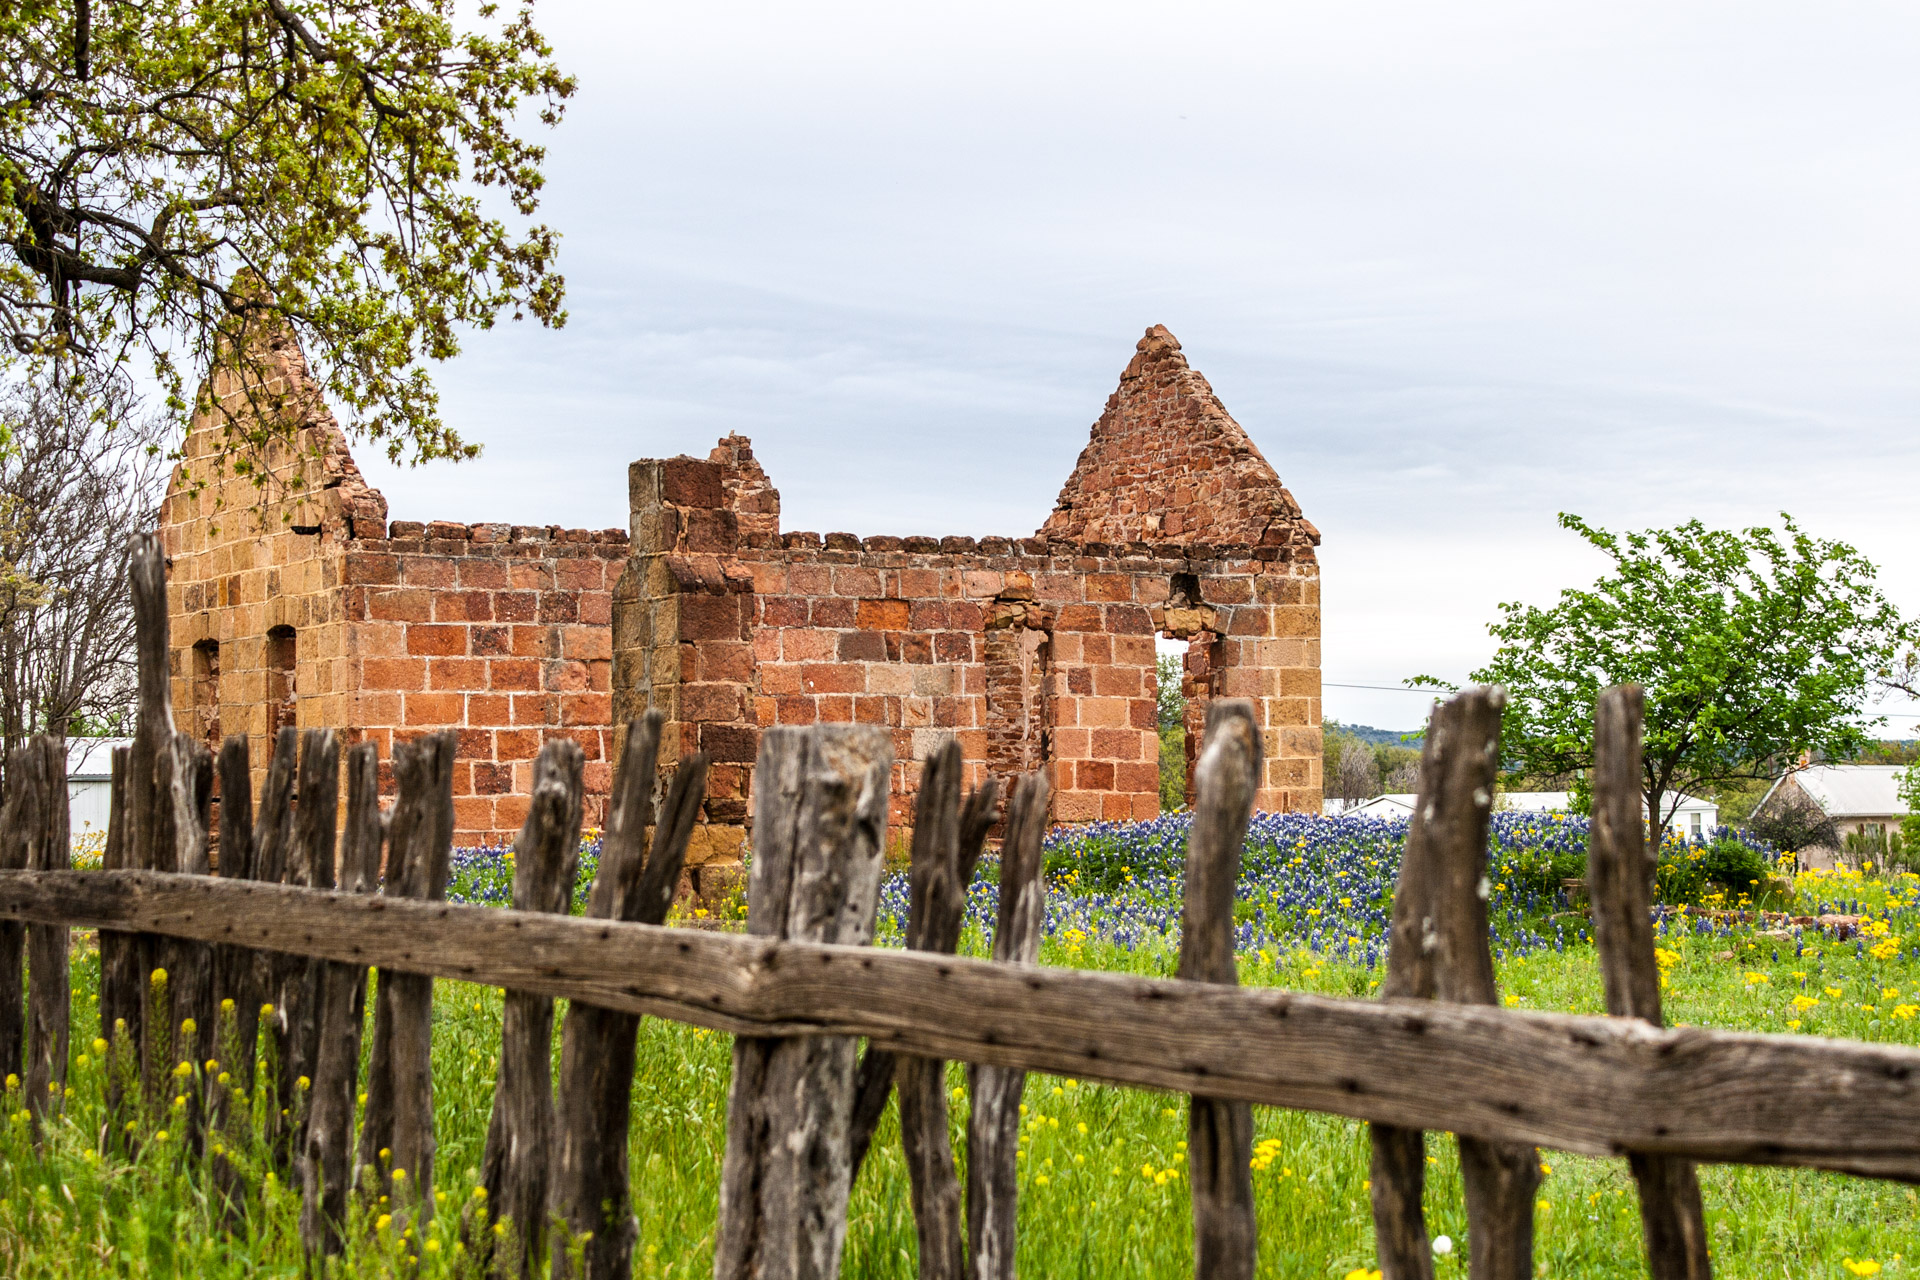 Pontotoc, Texas - A Stone Ruin With Bluebonnets (behind fence)